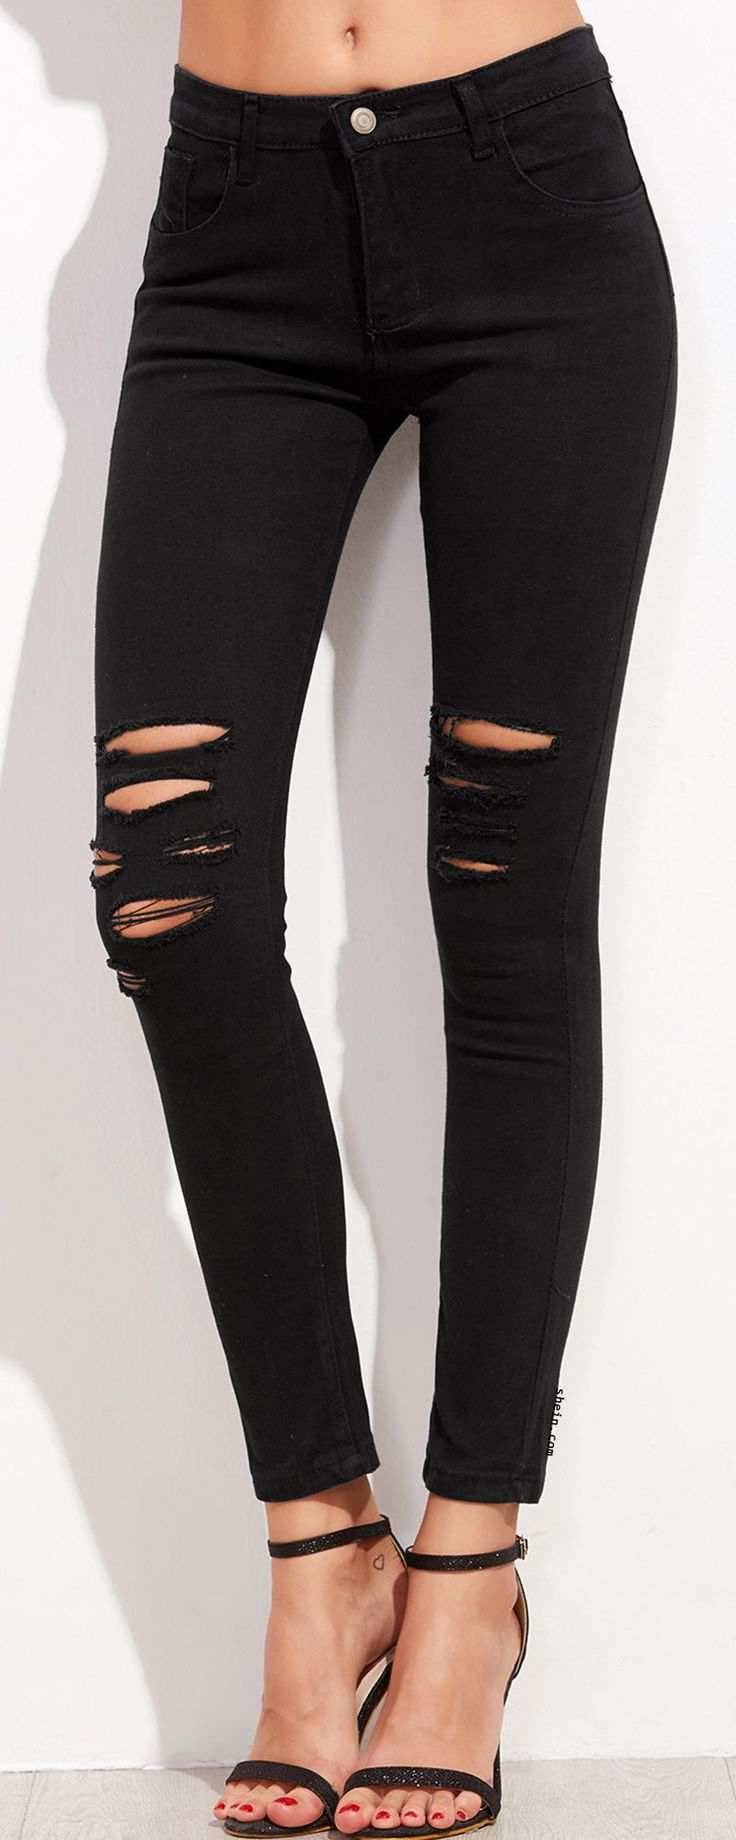 25  best ideas about Black jeans on Pinterest | Transitional ...